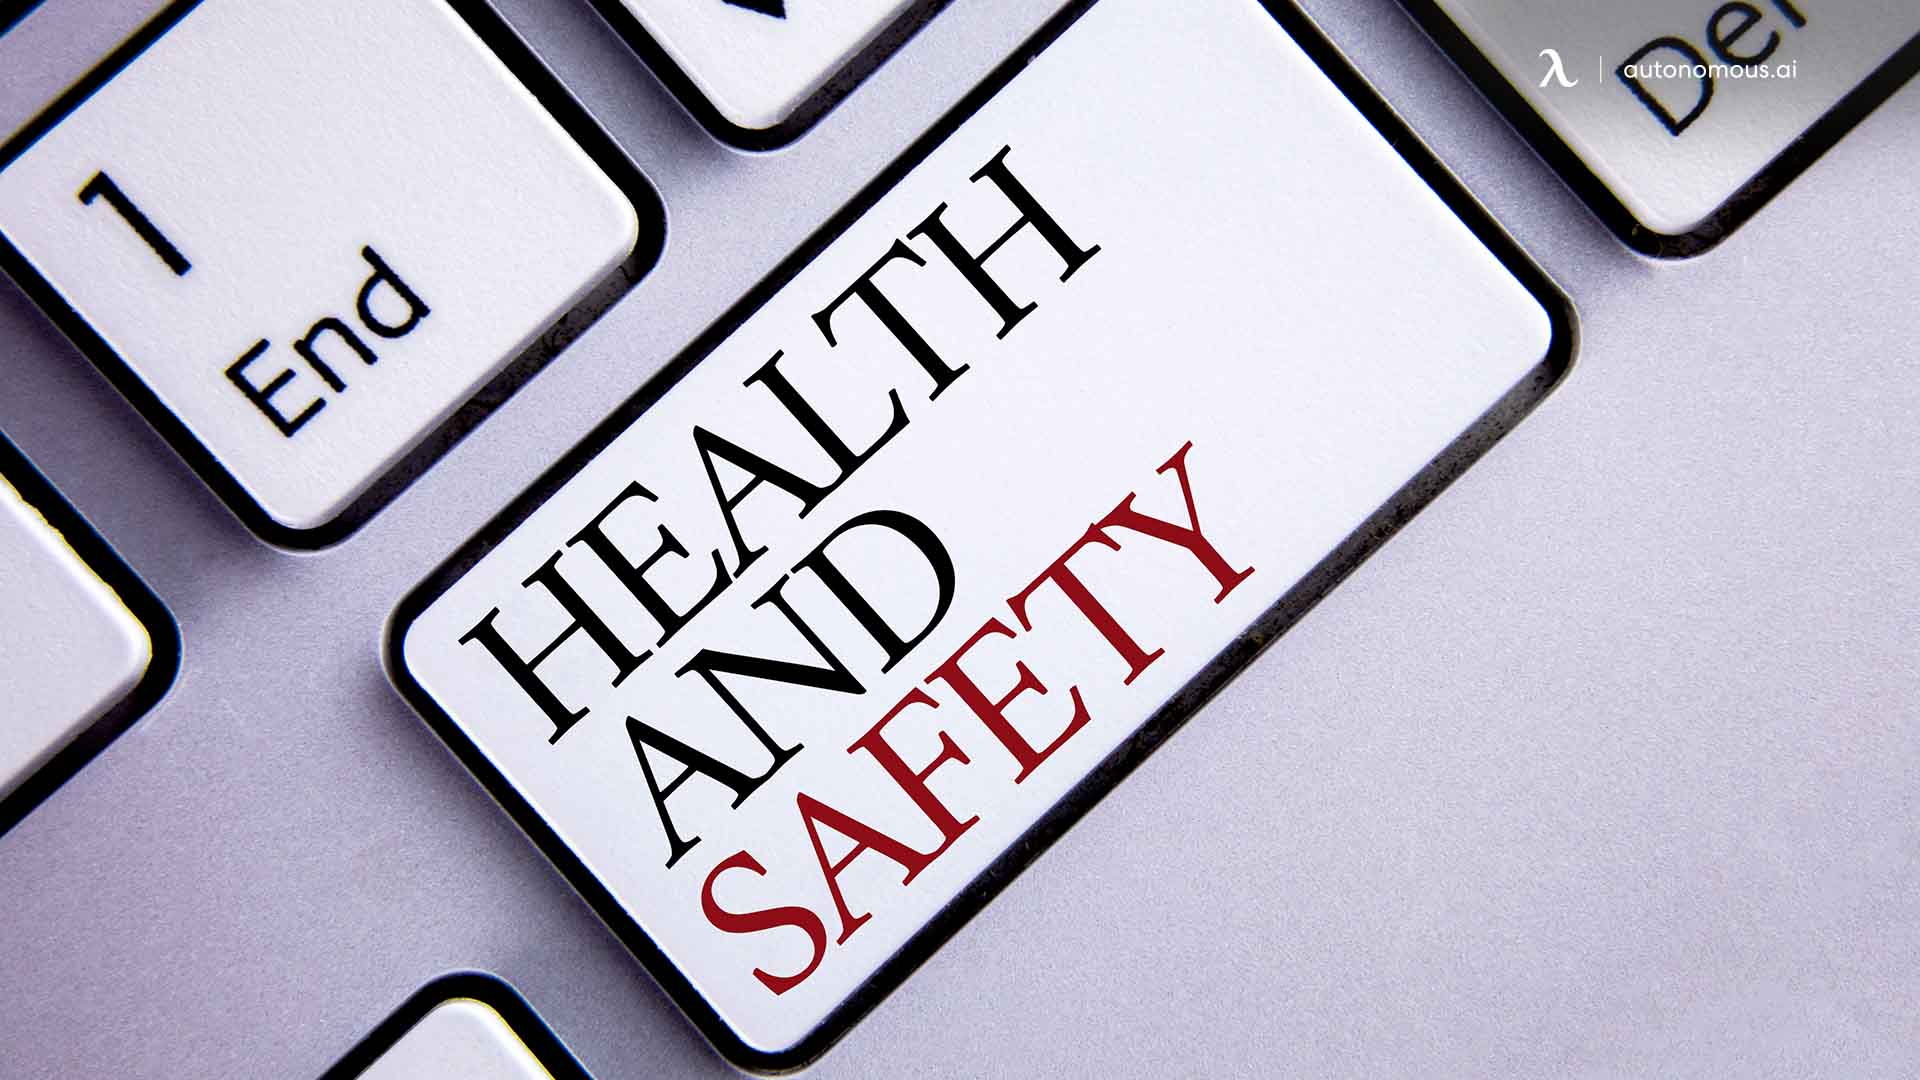 Prioritizes Employee Safety and Wellbeing